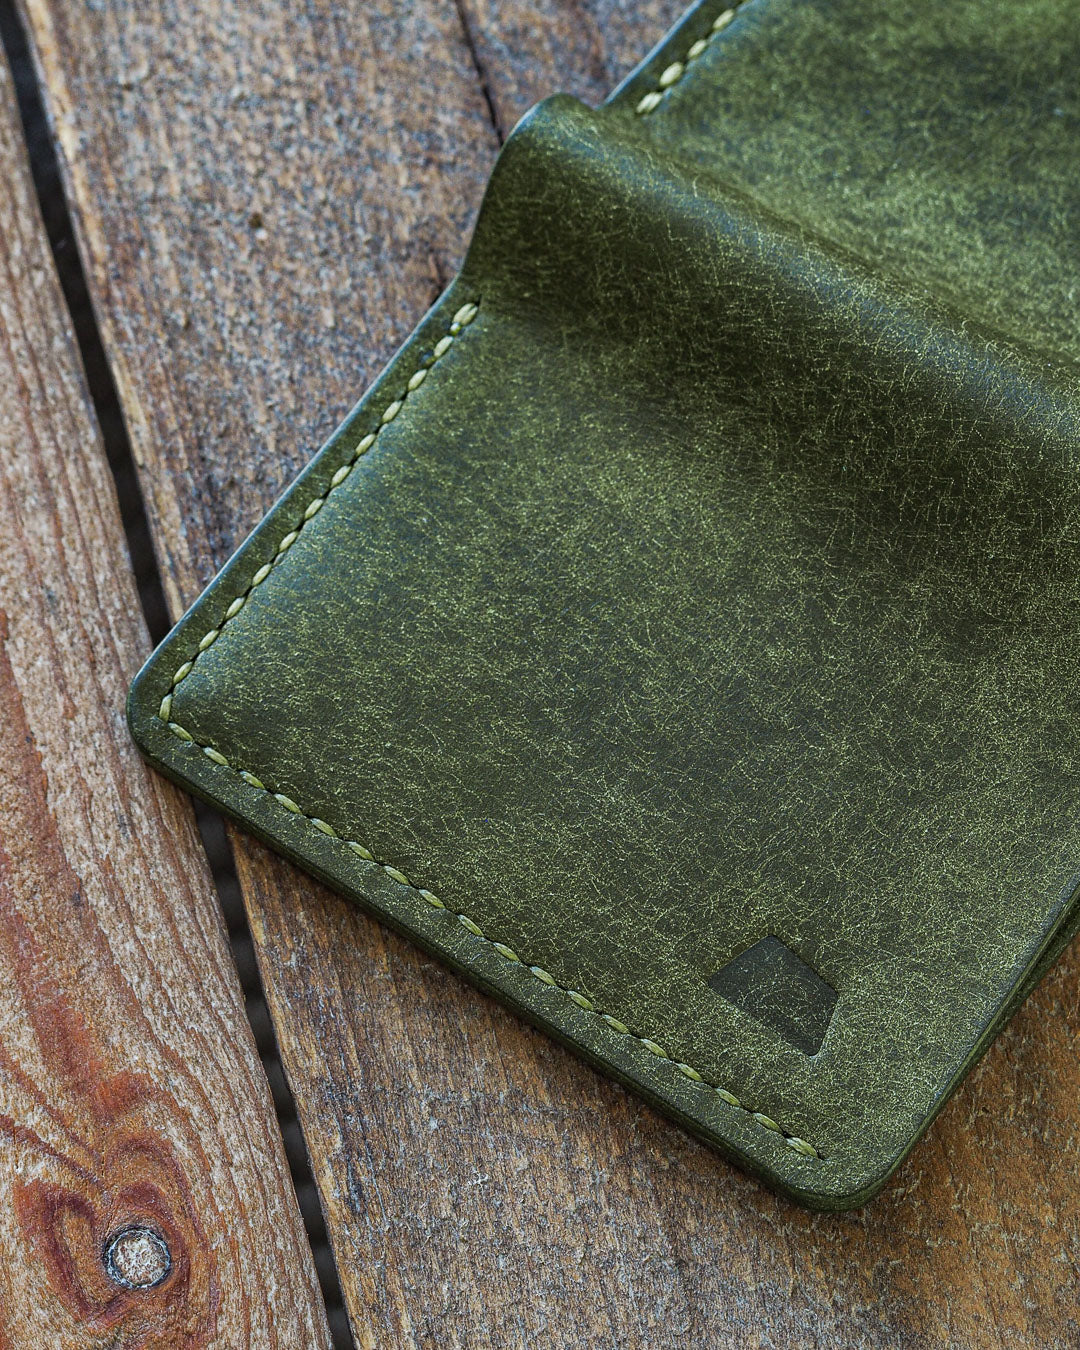 Luava handmade leather wallet NERO card holder cardholder handcrafted pueblo olive black cognac back open detail logo